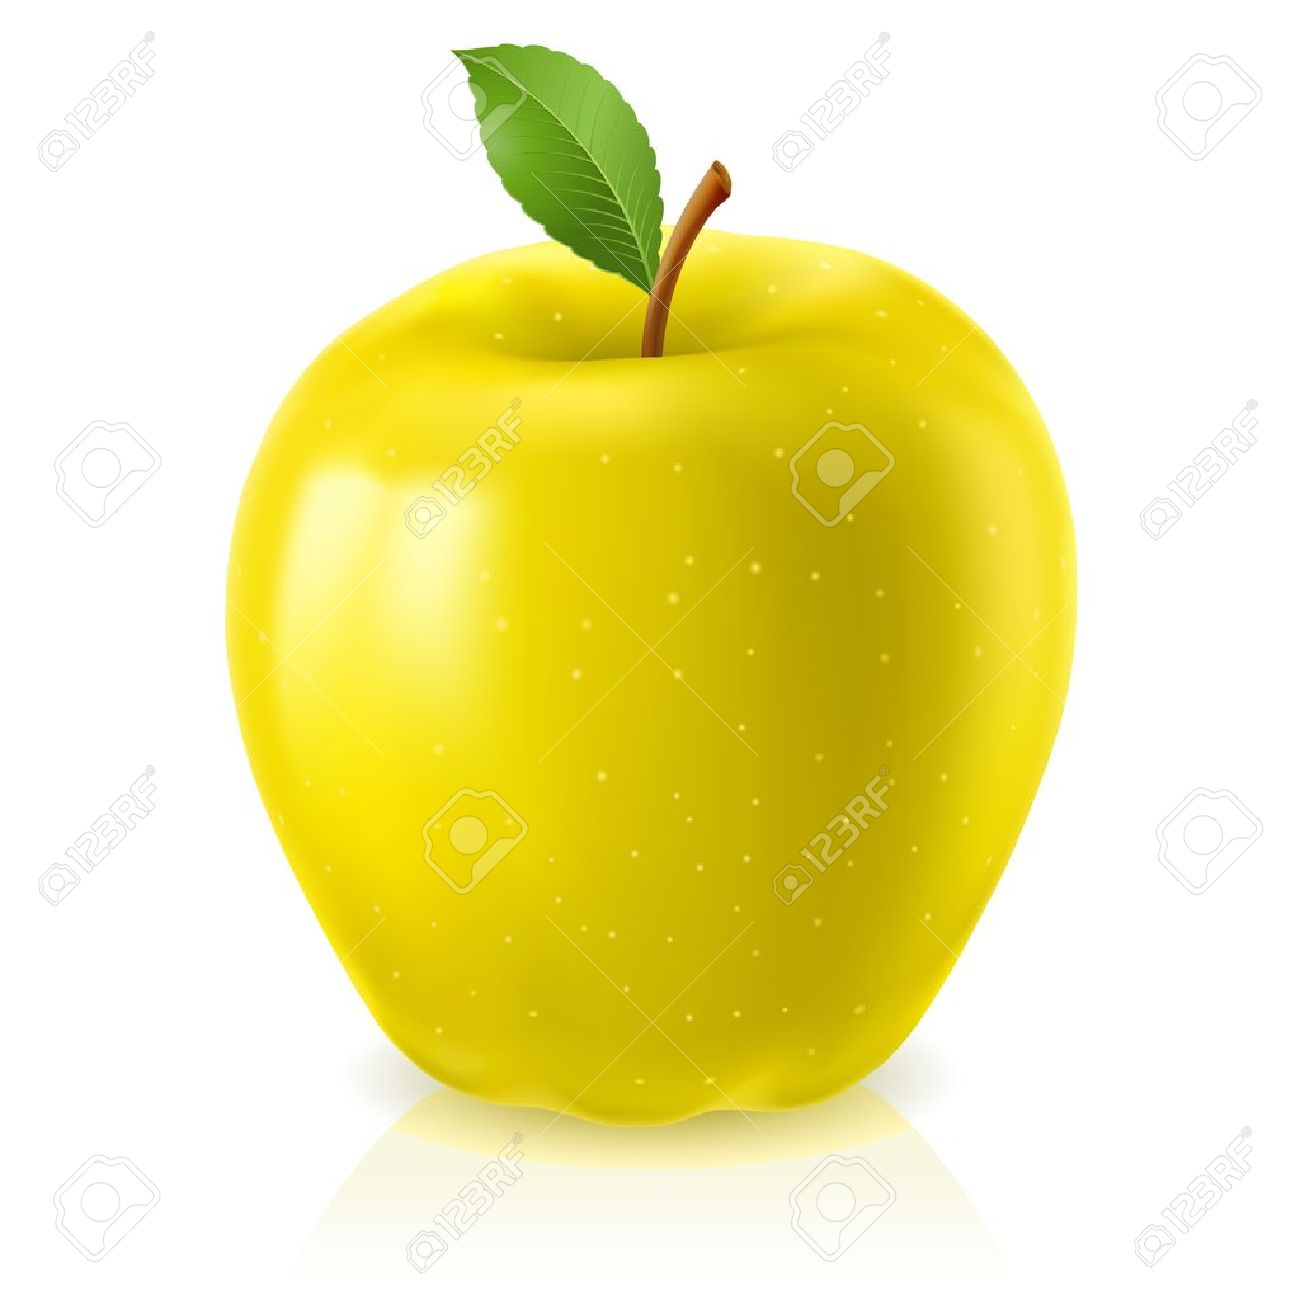 Yellow apple. Illustration on white background Stock Vector - 10459423